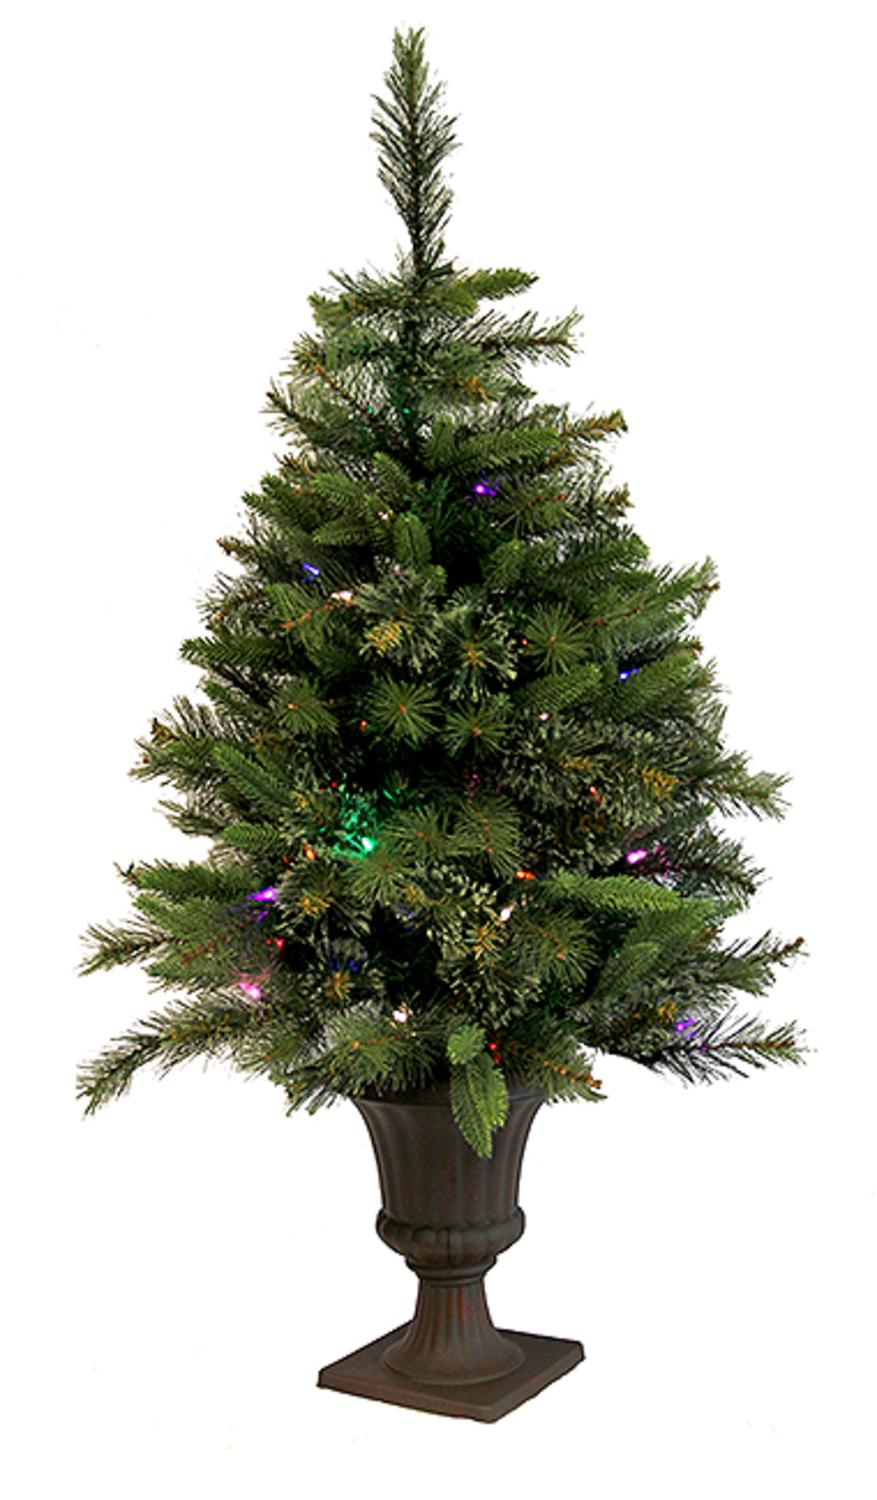 3.5' Pre-Lit Battery Operated CASHMERE Potted Christmas Tree - Multi LED Lights